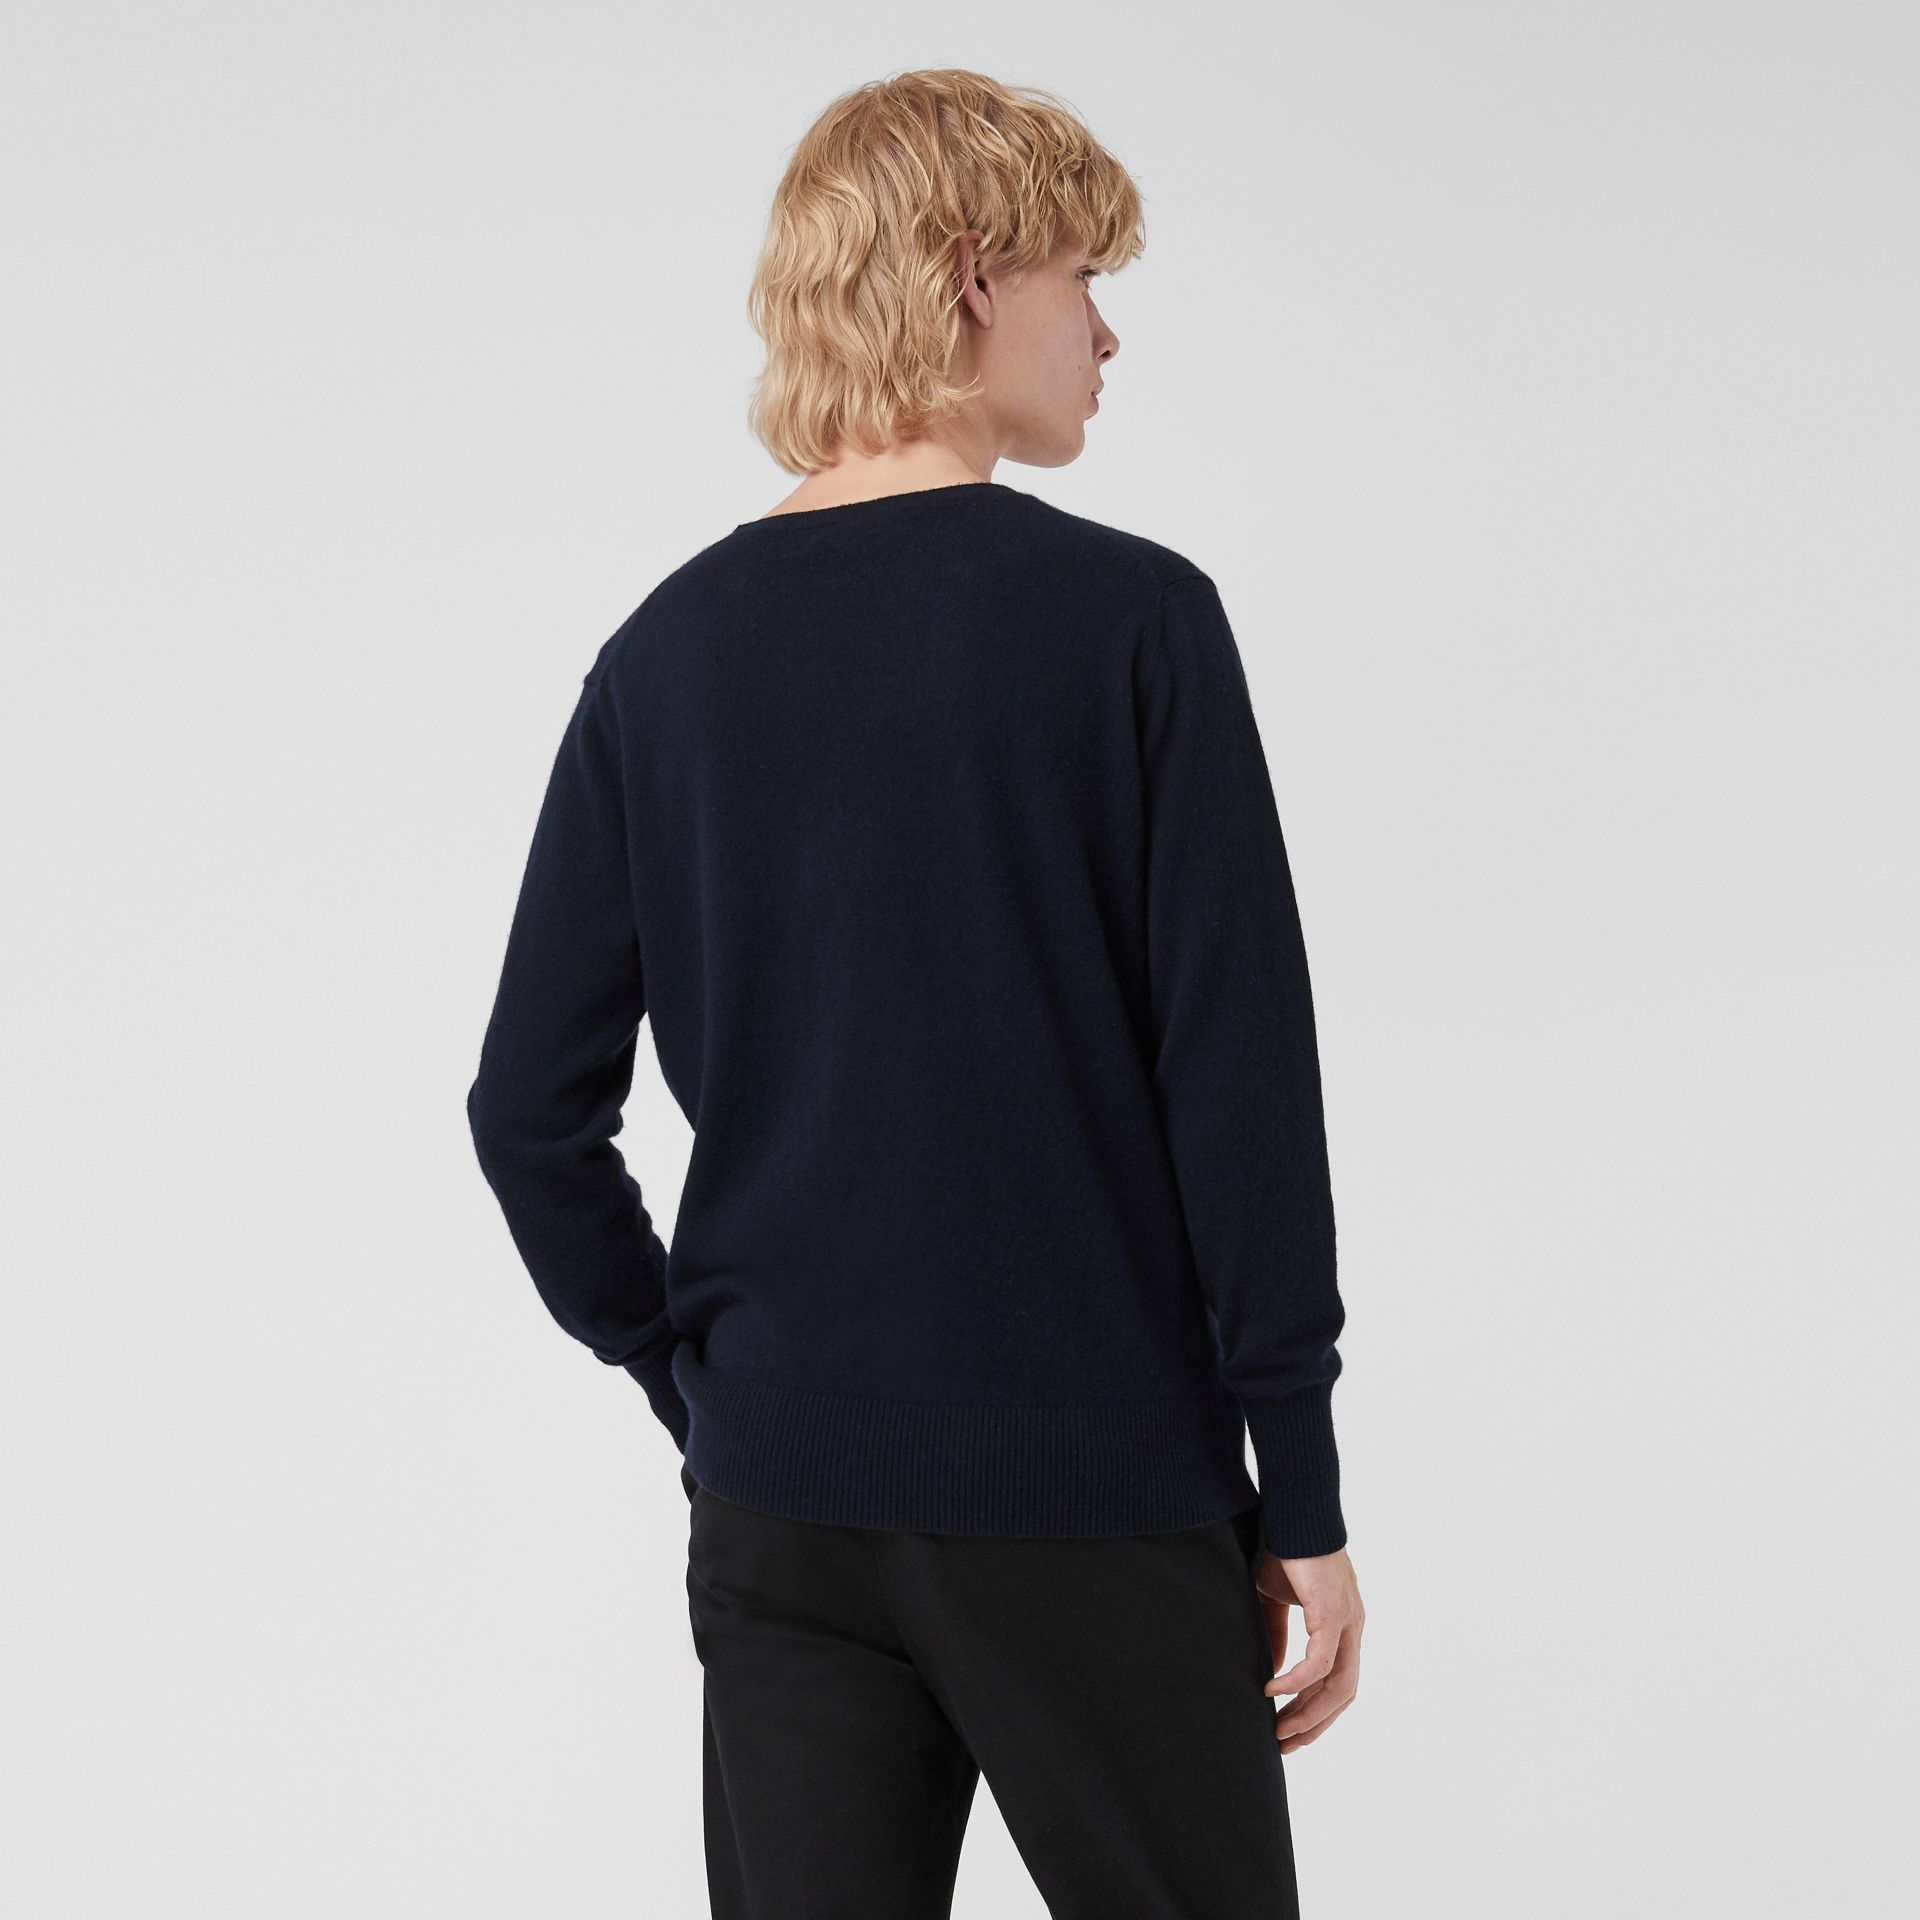 Embroidered Archive Logo Cashmere Sweater in Navy - Men | Burberry United States - gallery image 2